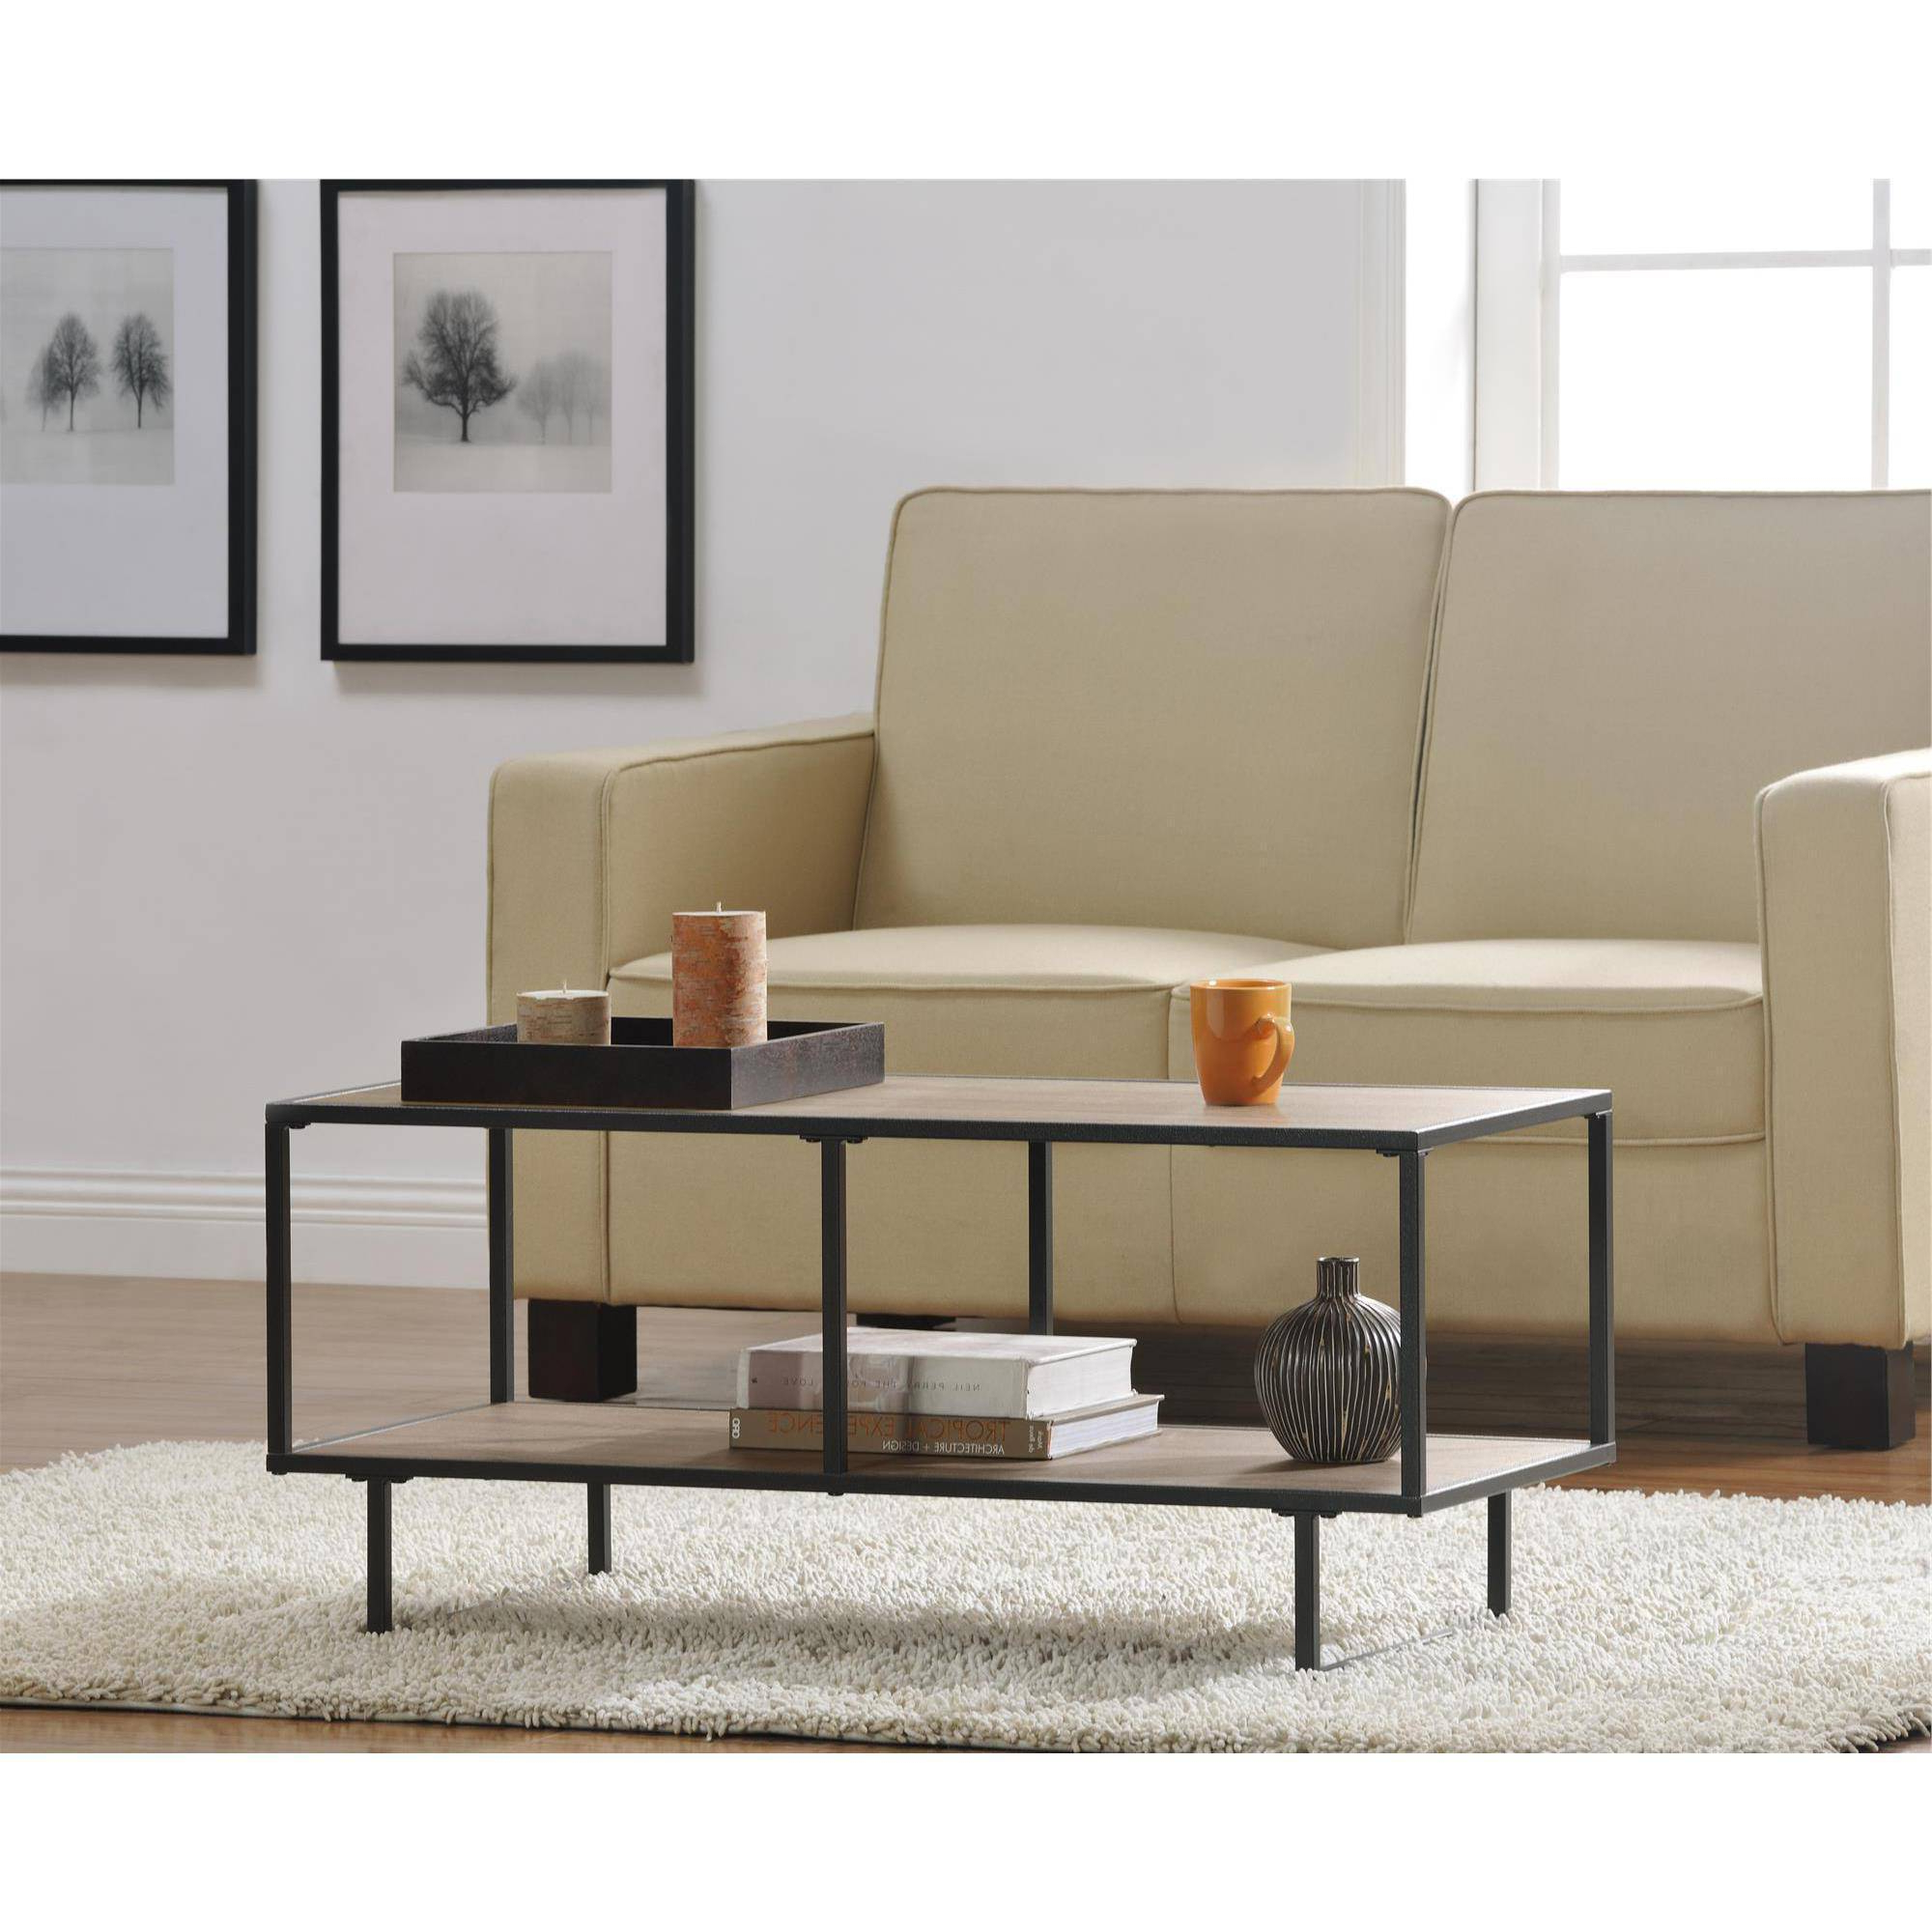 Most Up To Date Tv Stand Coffee Table Sets Intended For Ameriwood Home Emmett Tv Stand/coffee Table – Walmart (Gallery 20 of 20)